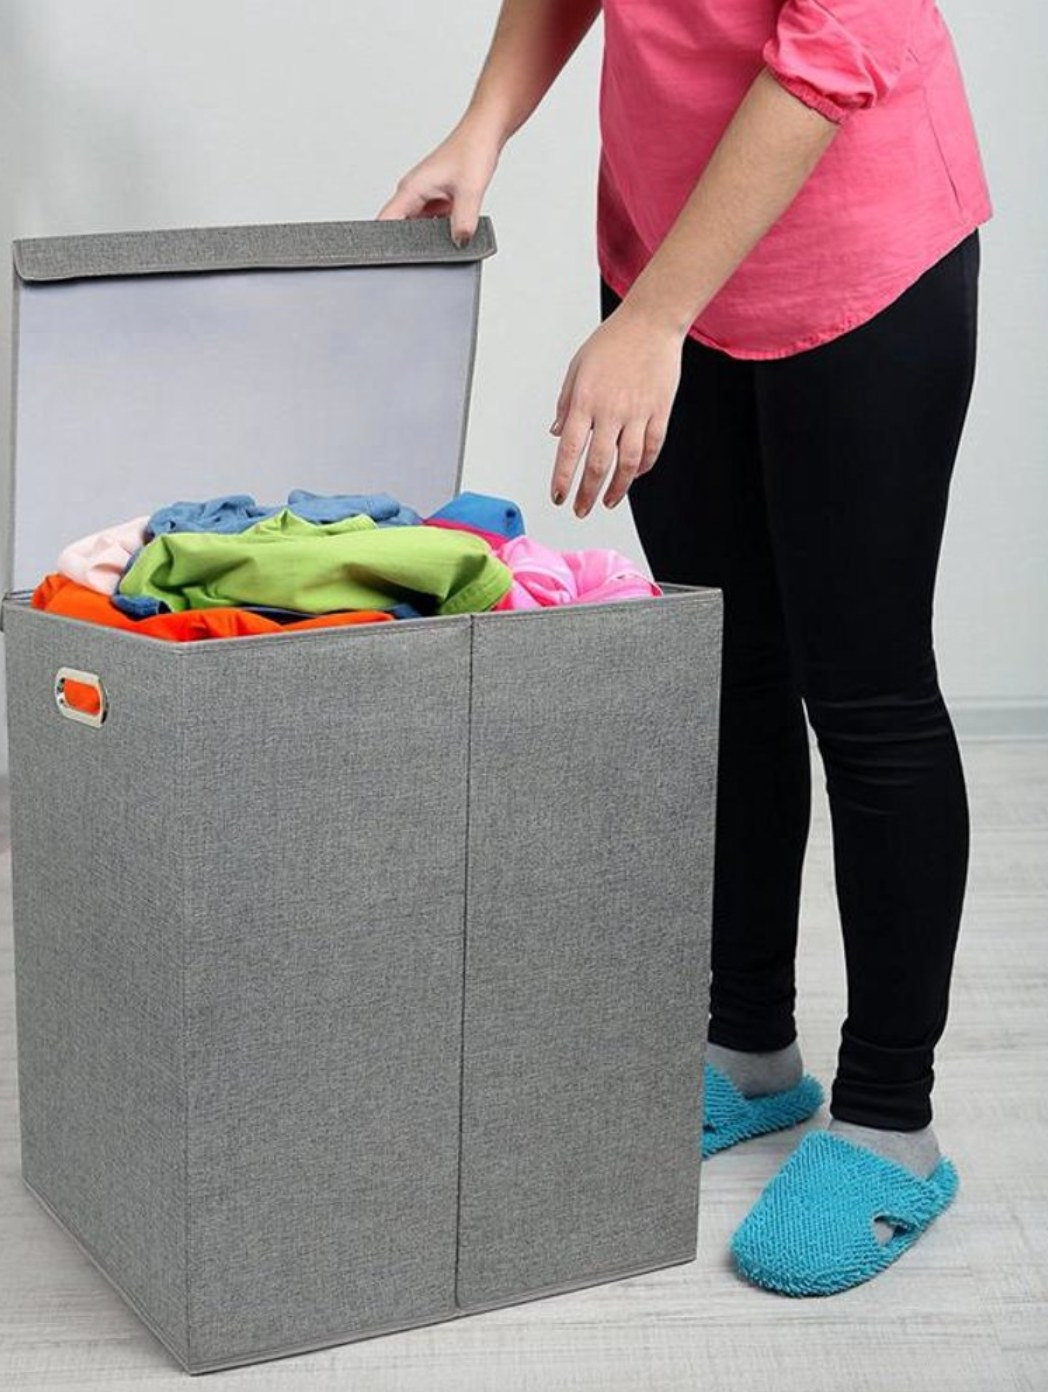 The collapsable double hamper